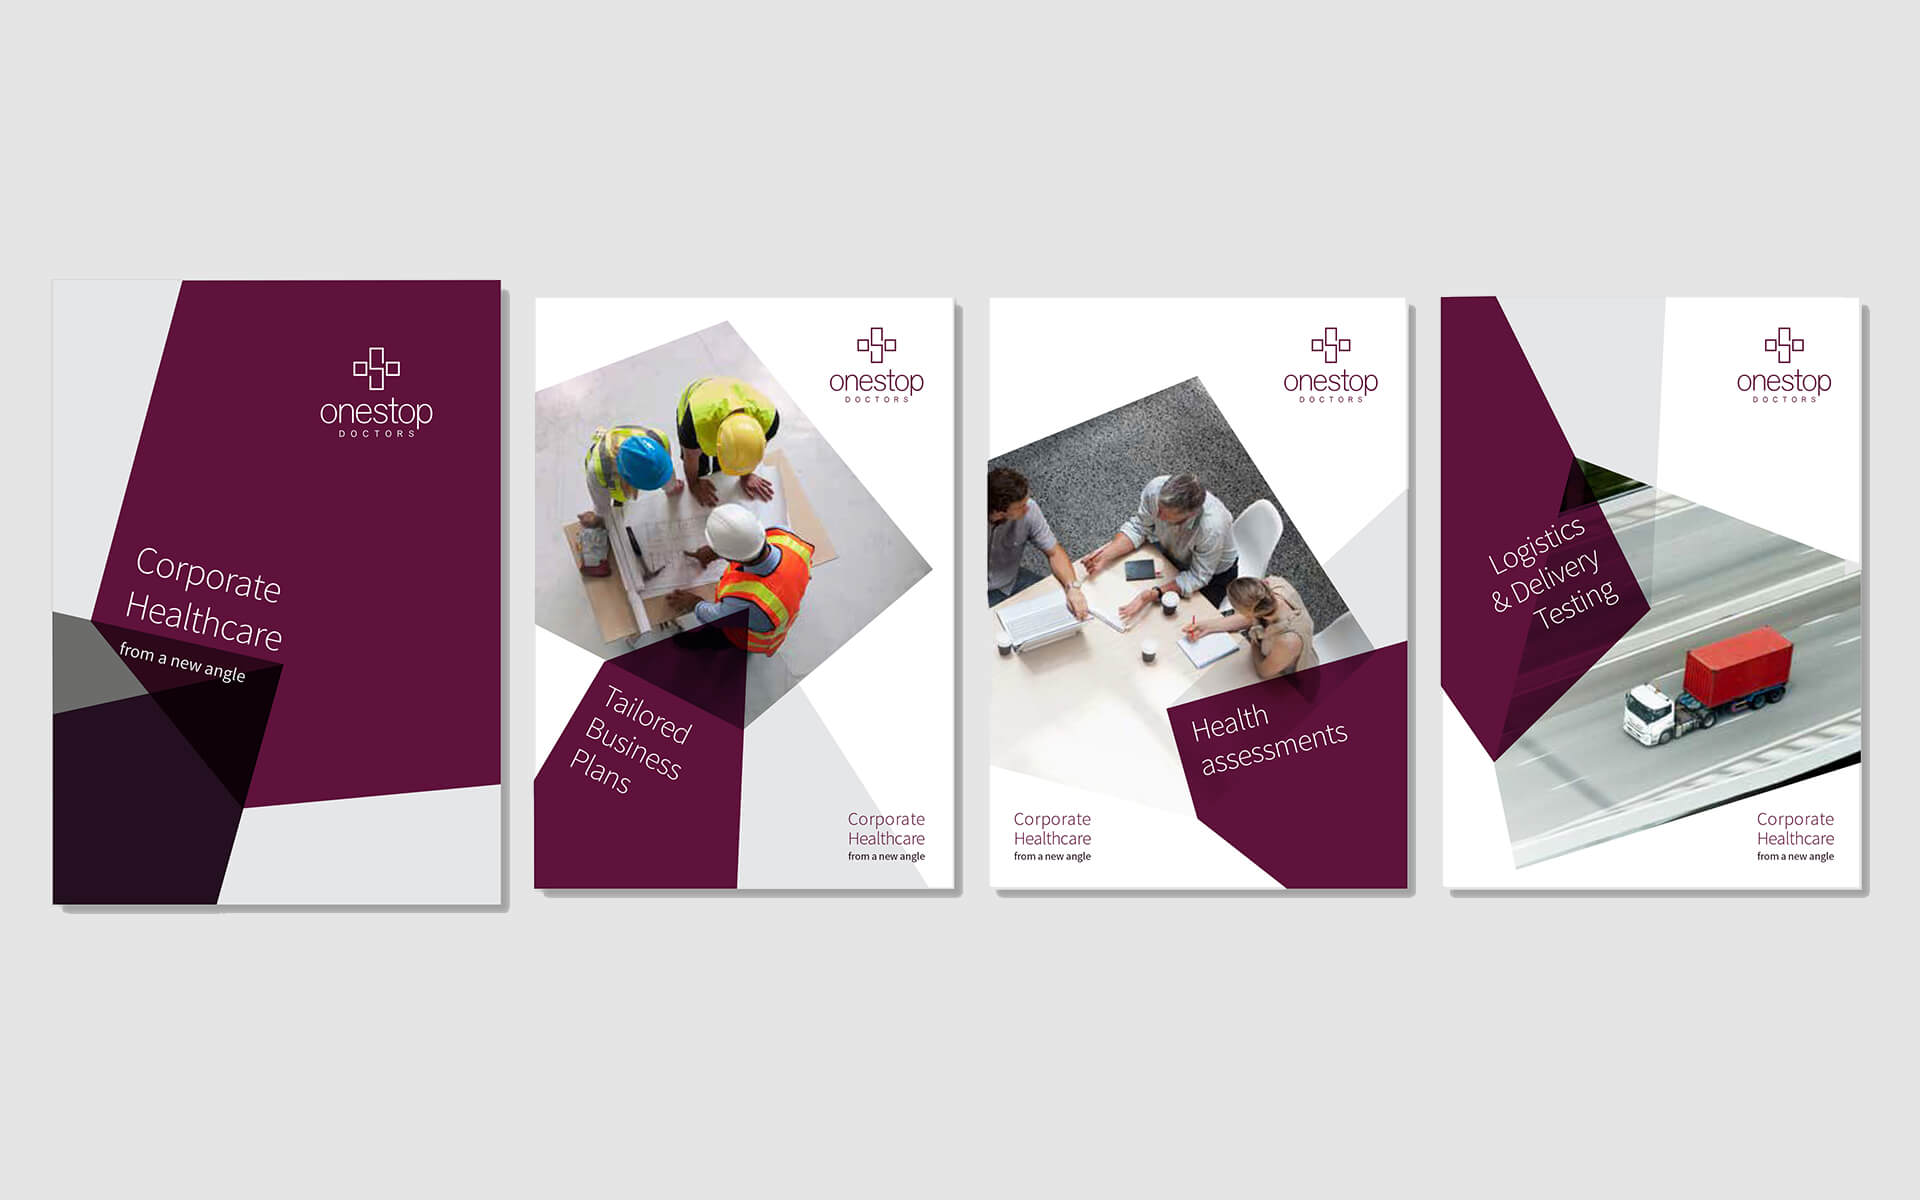 one stop doctors b2b brochure